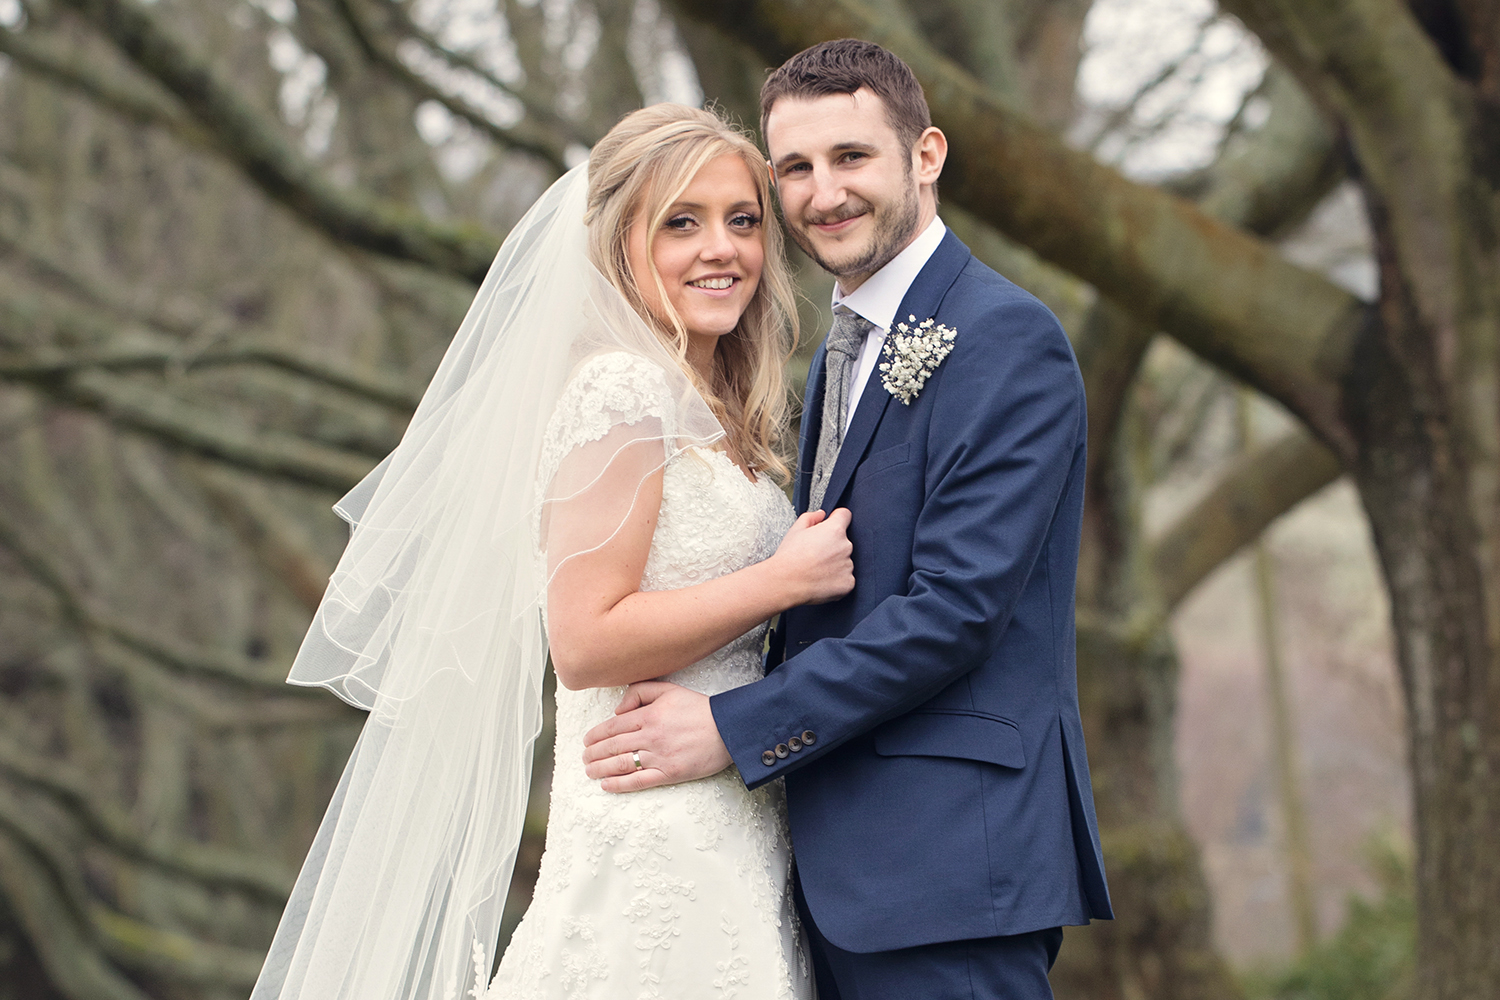 Amanda & Freddie, April 2018 - We can not thank you enough capturing our wedding day so beautifully. Having seen previous weddings on your website I knew the photographs would be lovely, but you far surpassed our expectations! Professional, reassuring, organised and very friendly, from the first email contact, all the way to the stunning delivery of the photographs. Thank you so much! Xx